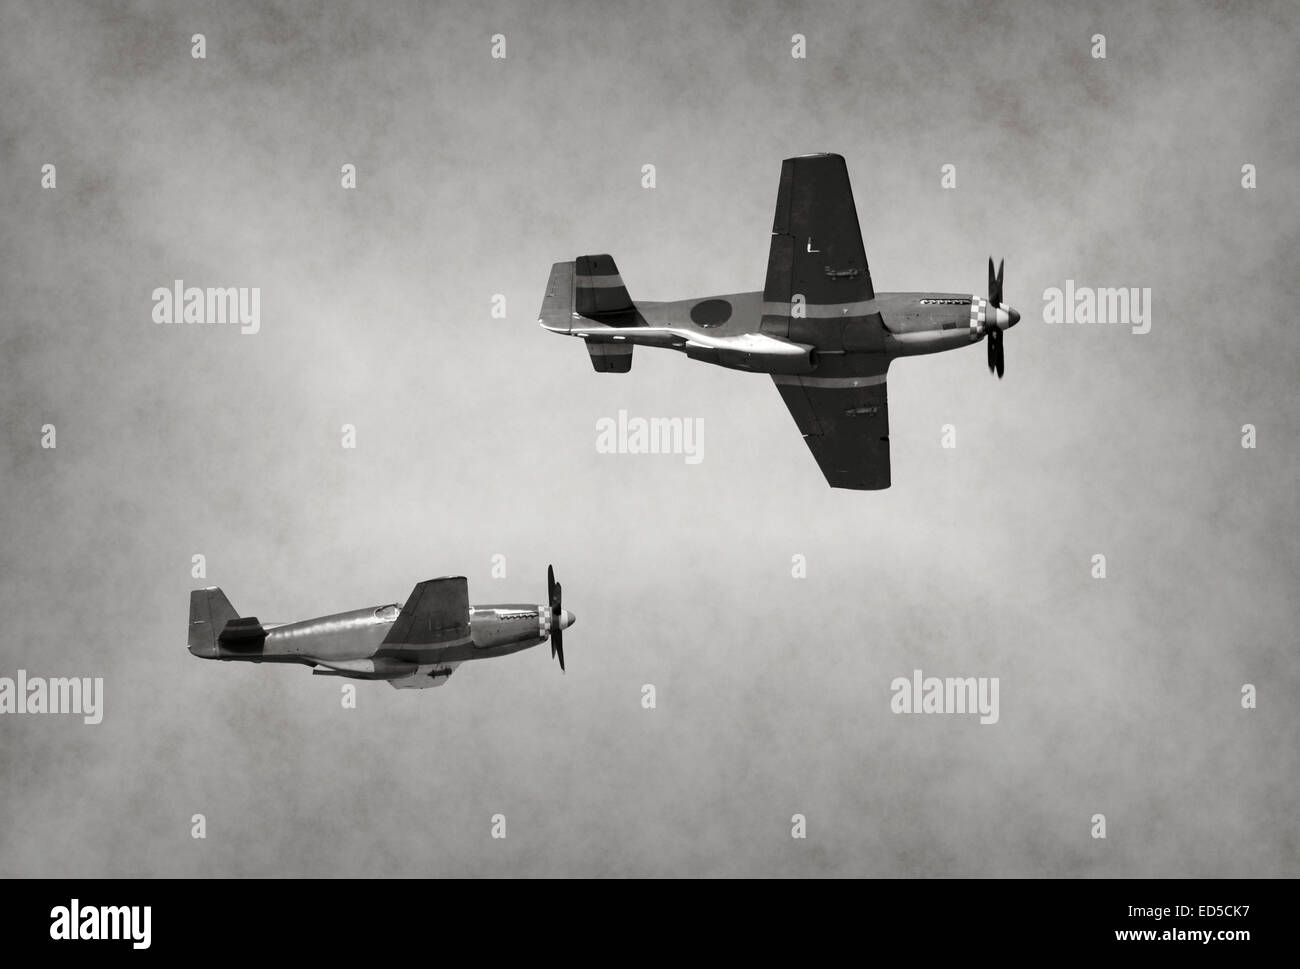 World War II era fighter planes on a mission - Stock Image